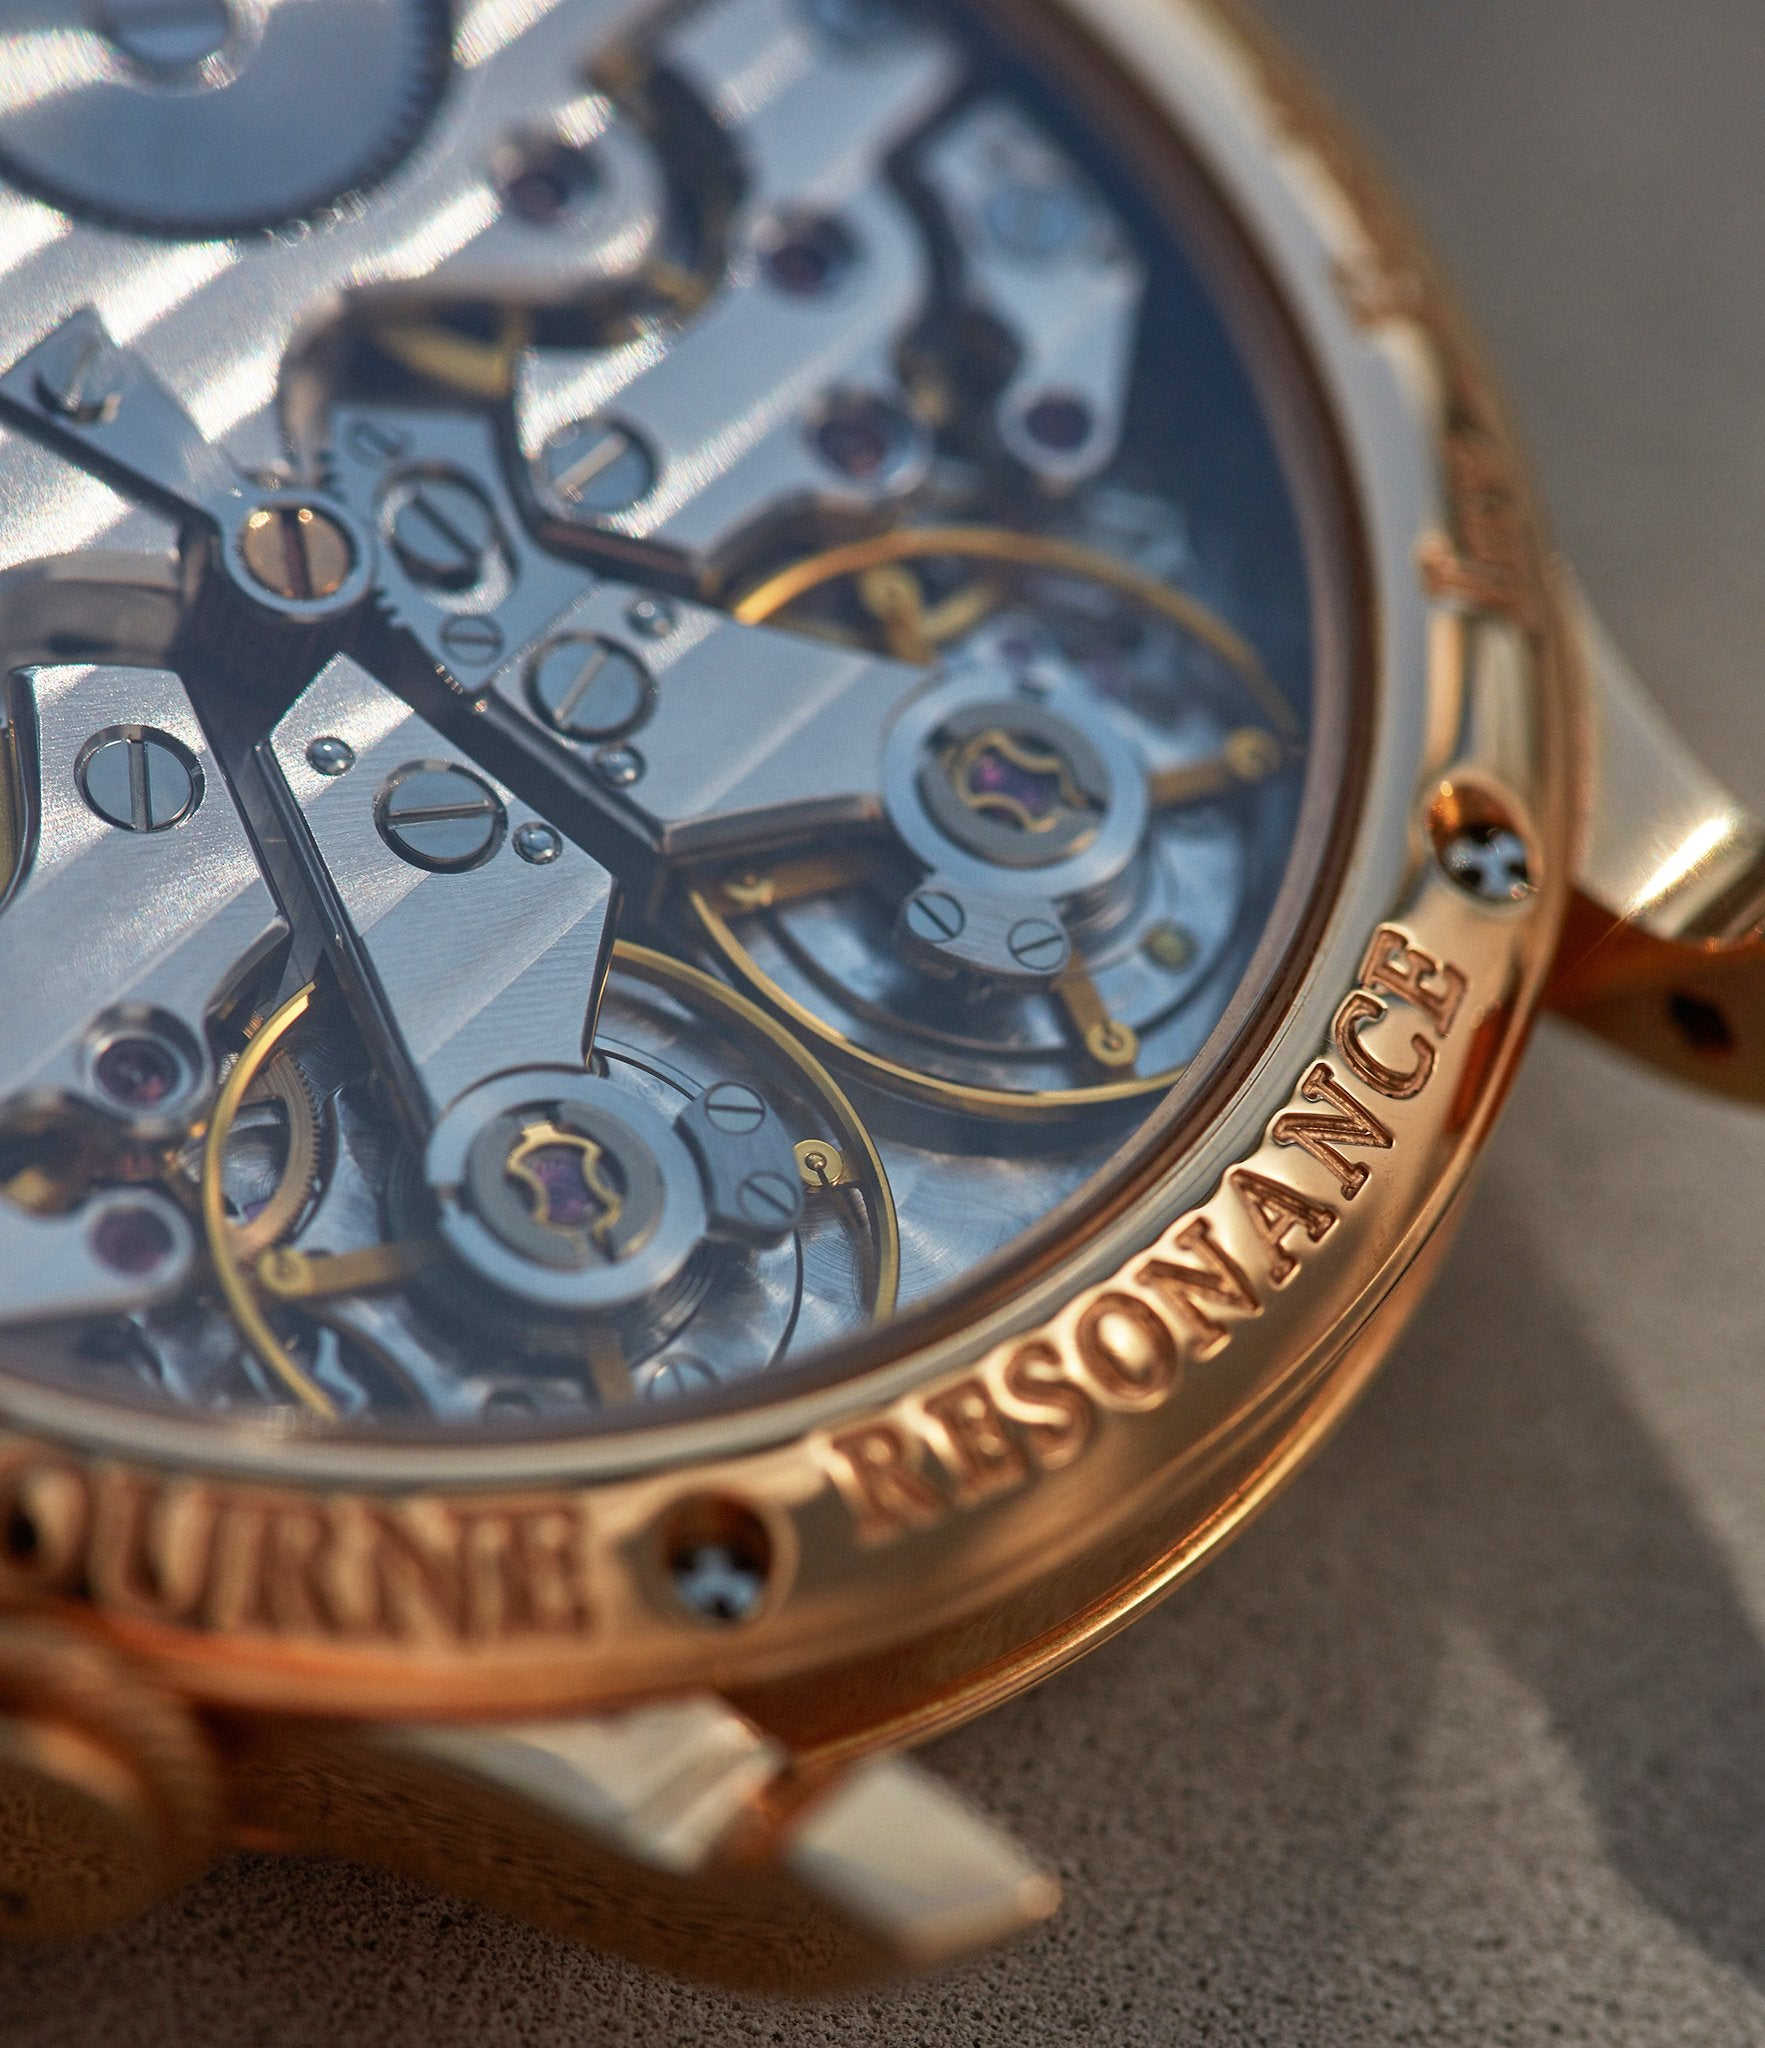 Movement shots of F.P. Journe in Chasing Accuracy in Mechanical Wristwatches for A Collected Man London